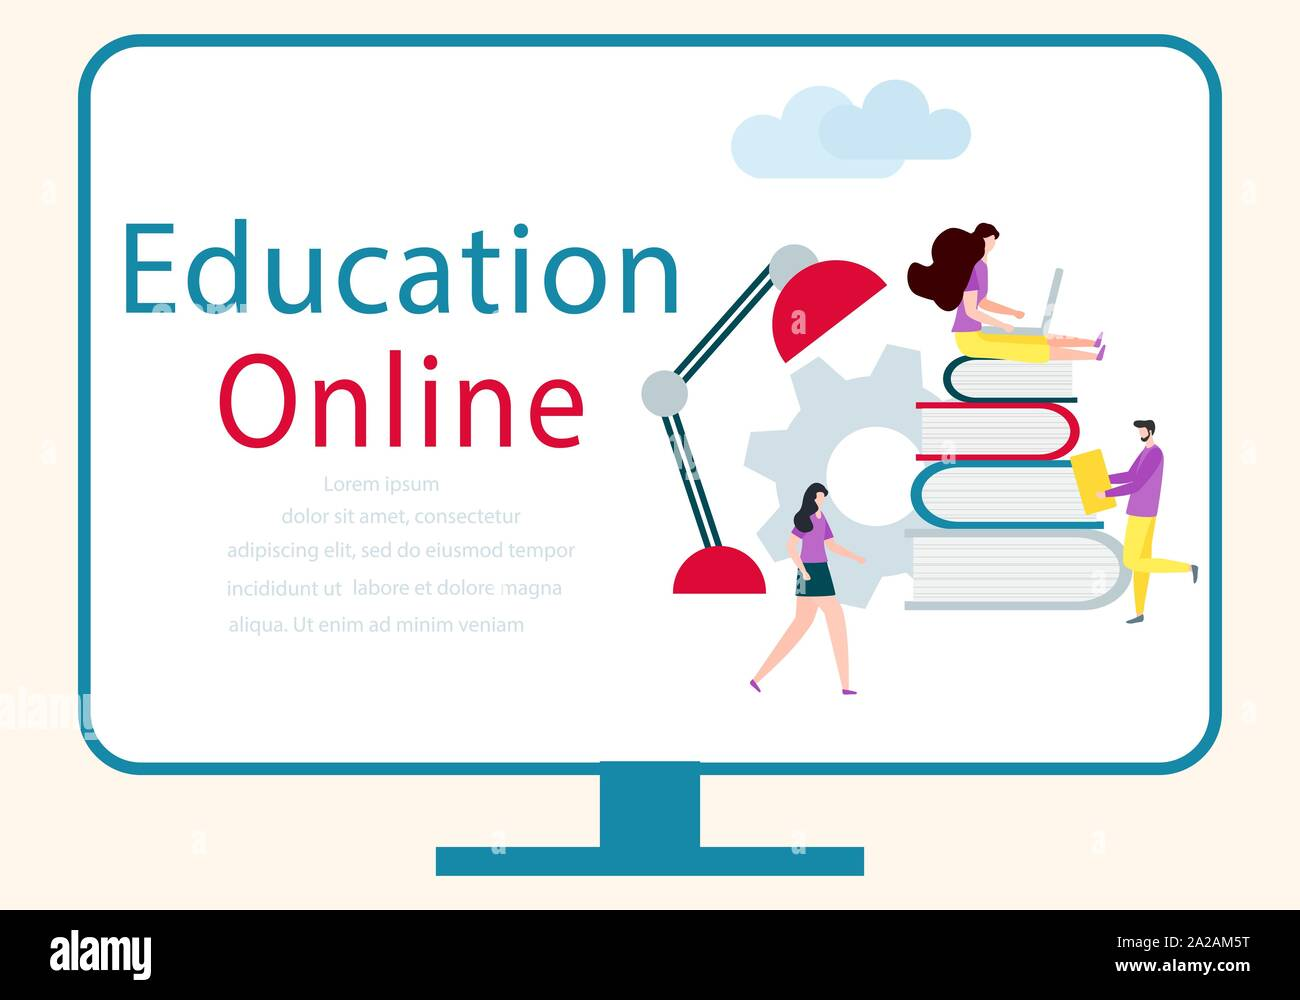 Vector Illustration With Learning People Online Education Online Distance Studying Teaching Learning Concept Online Tutorial E Learning School B Stock Vector Image Art Alamy